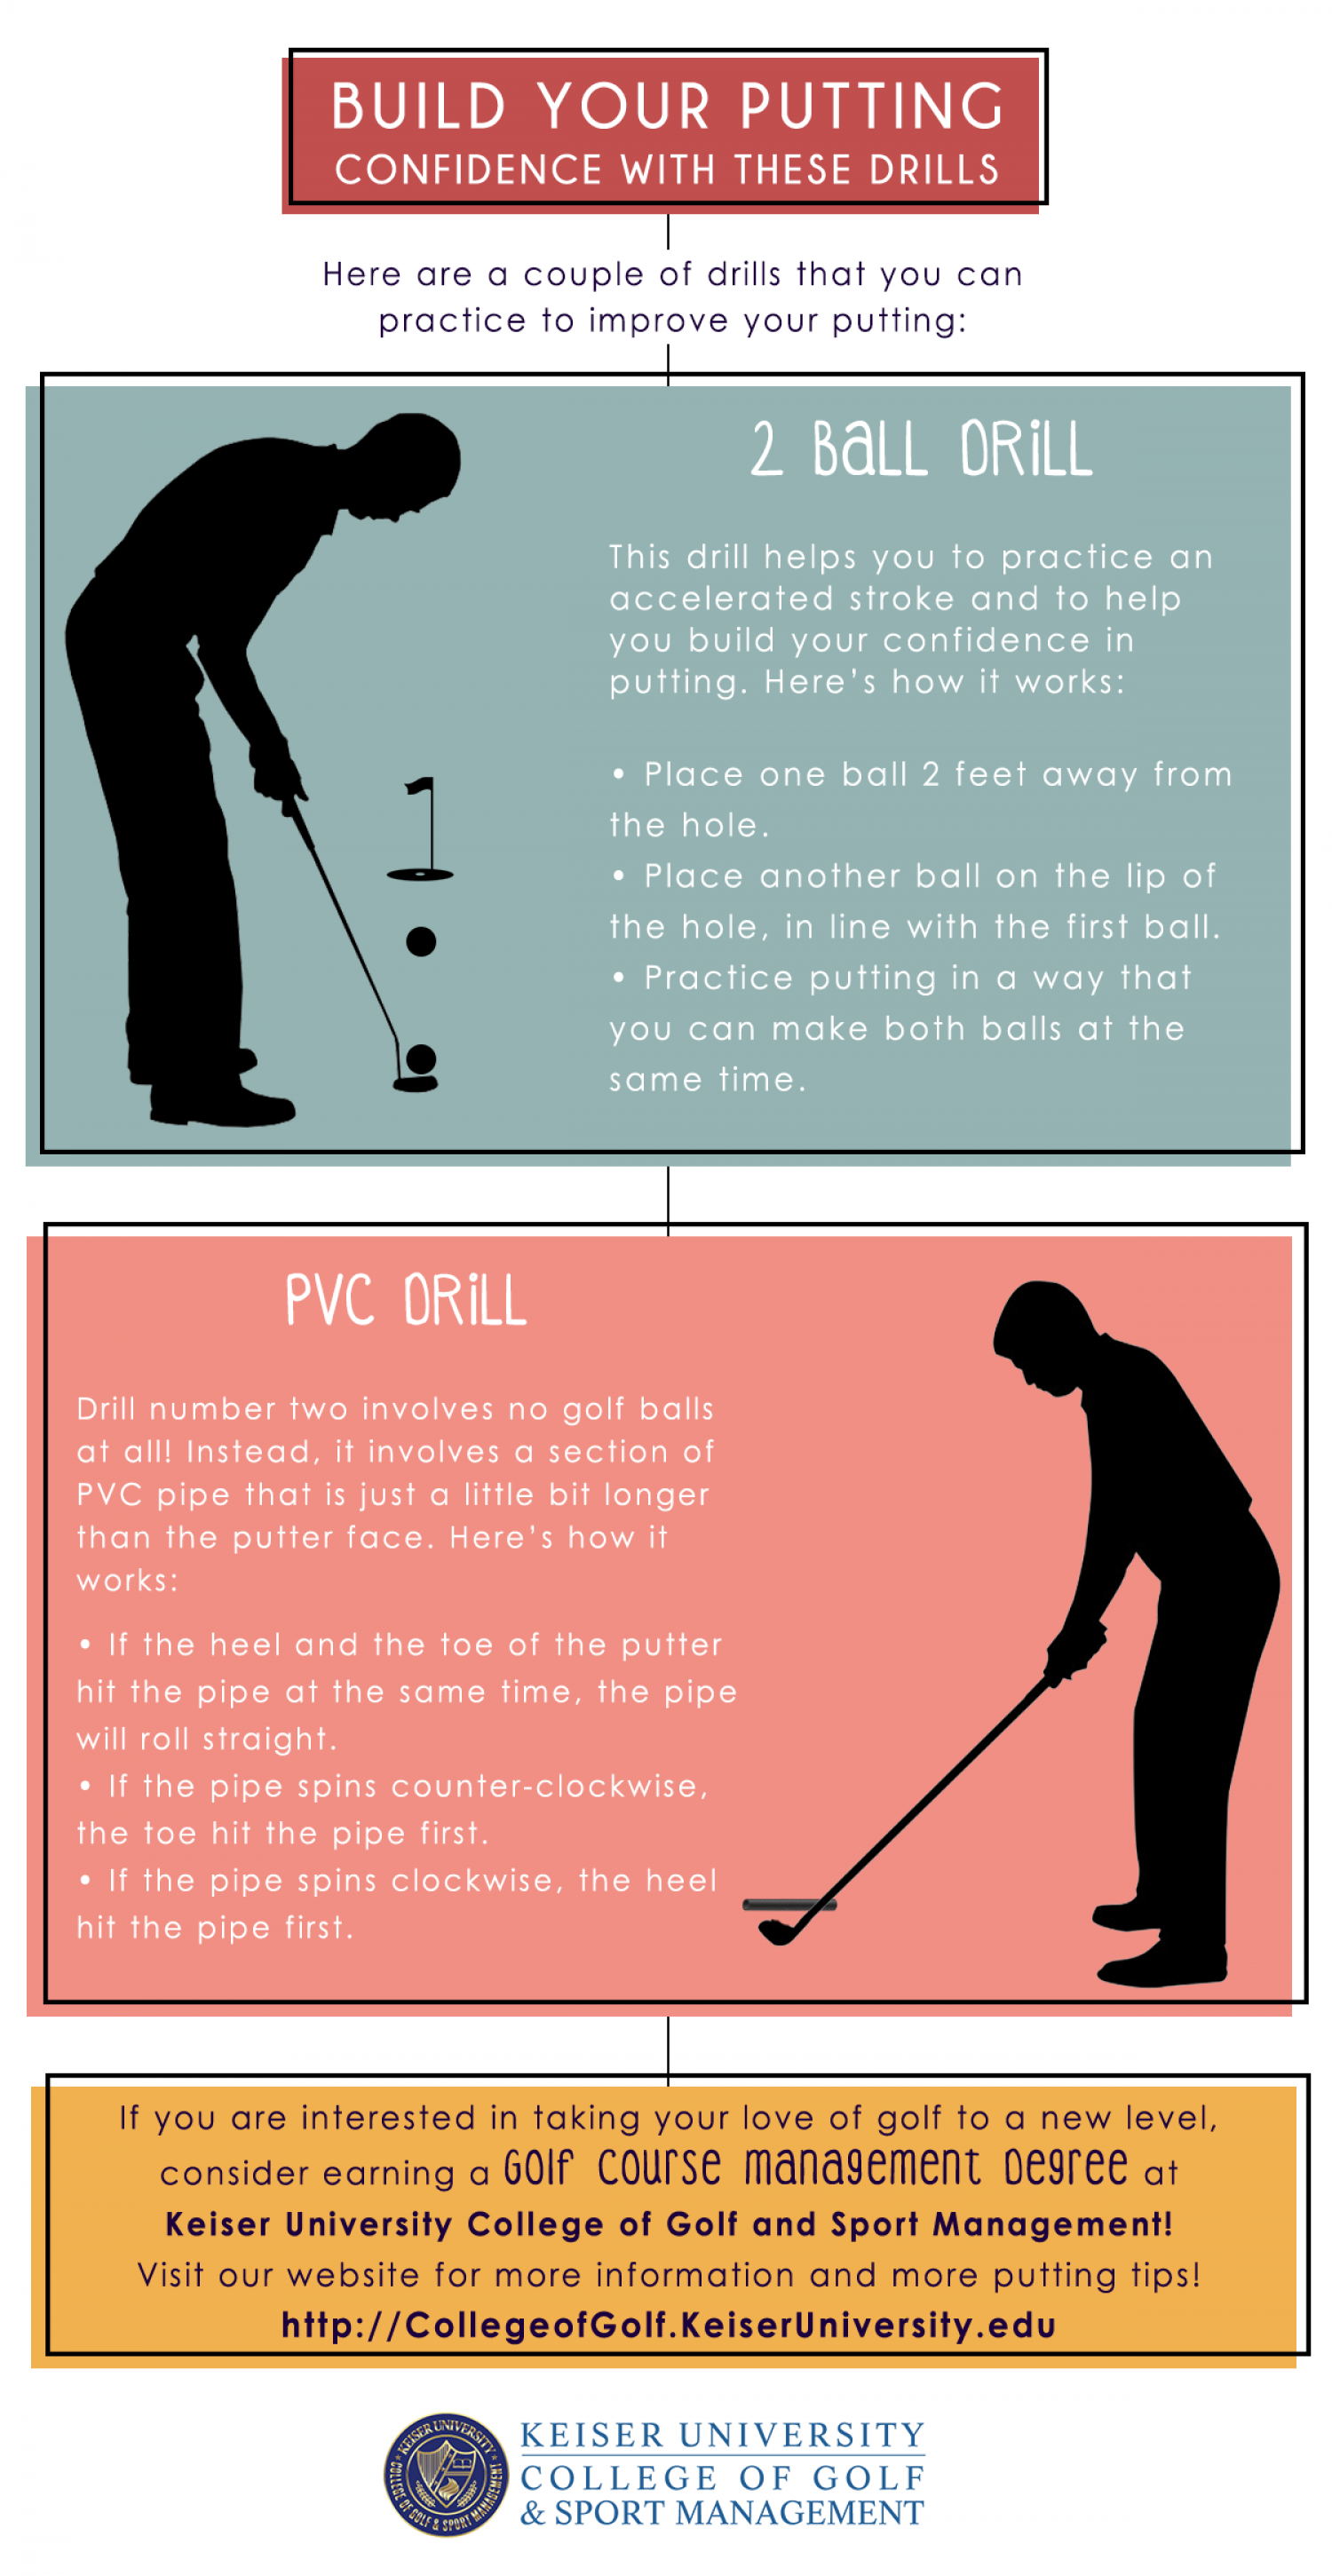 Build your Putting Confidence with these Drills Infographic